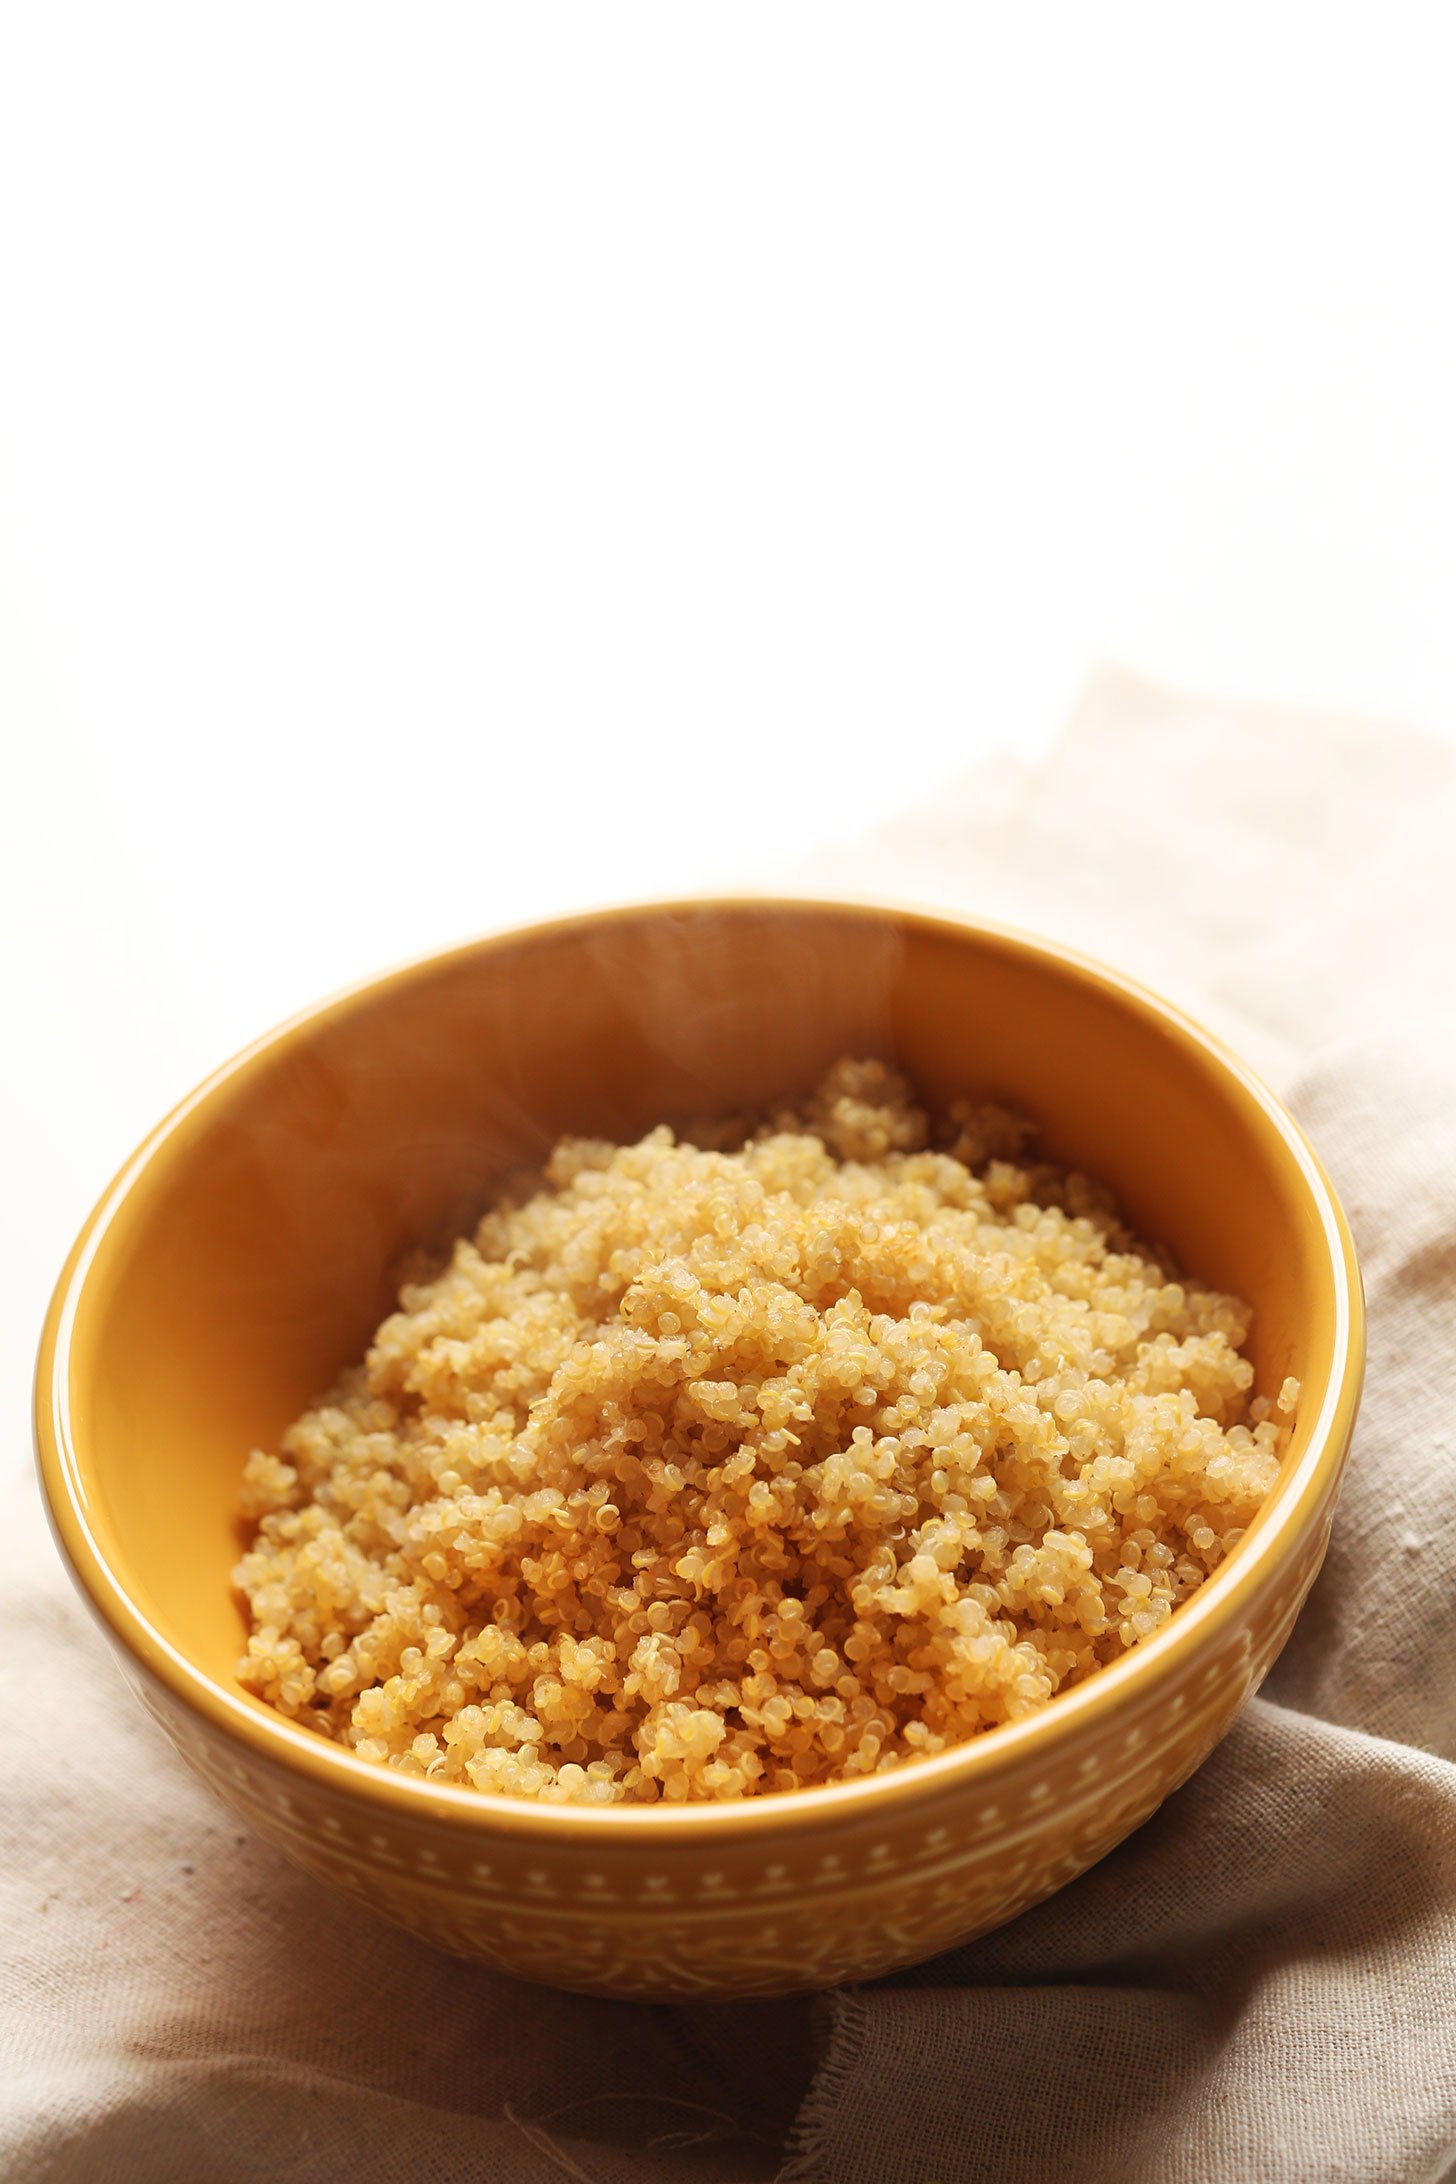 Bowl of freshly cooked quinoa prepared using our favorite method for fluffy quinoa